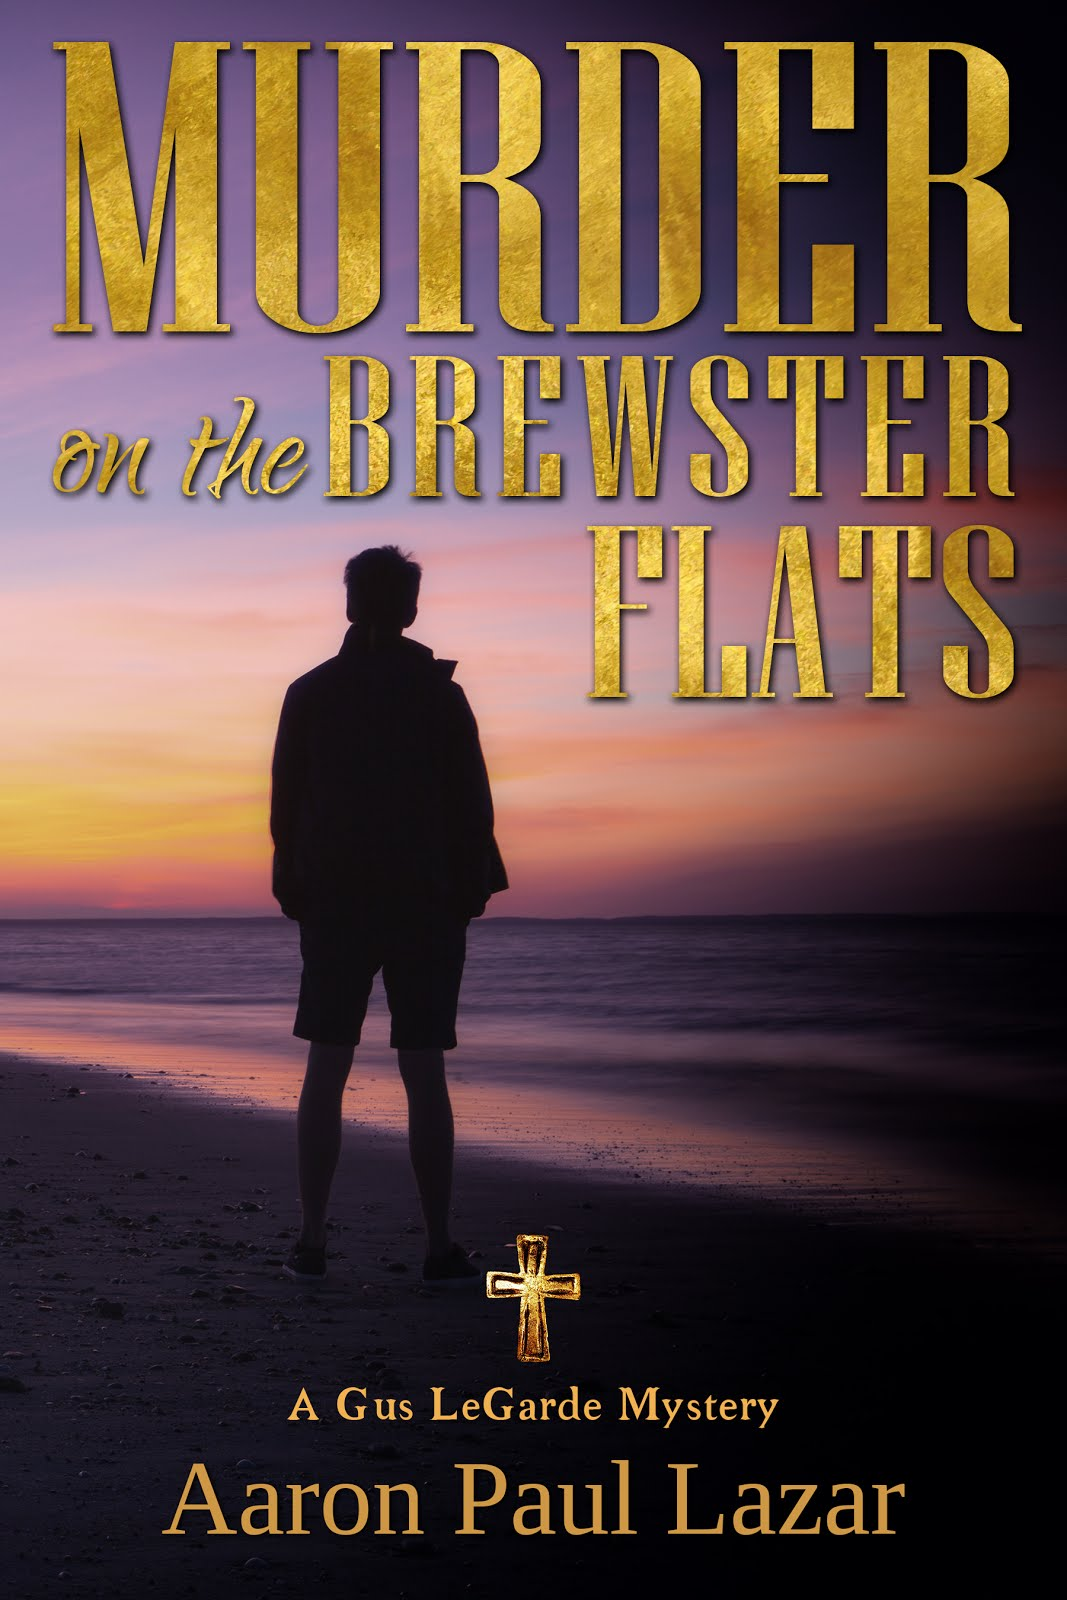 Murder on the Brewster Flats